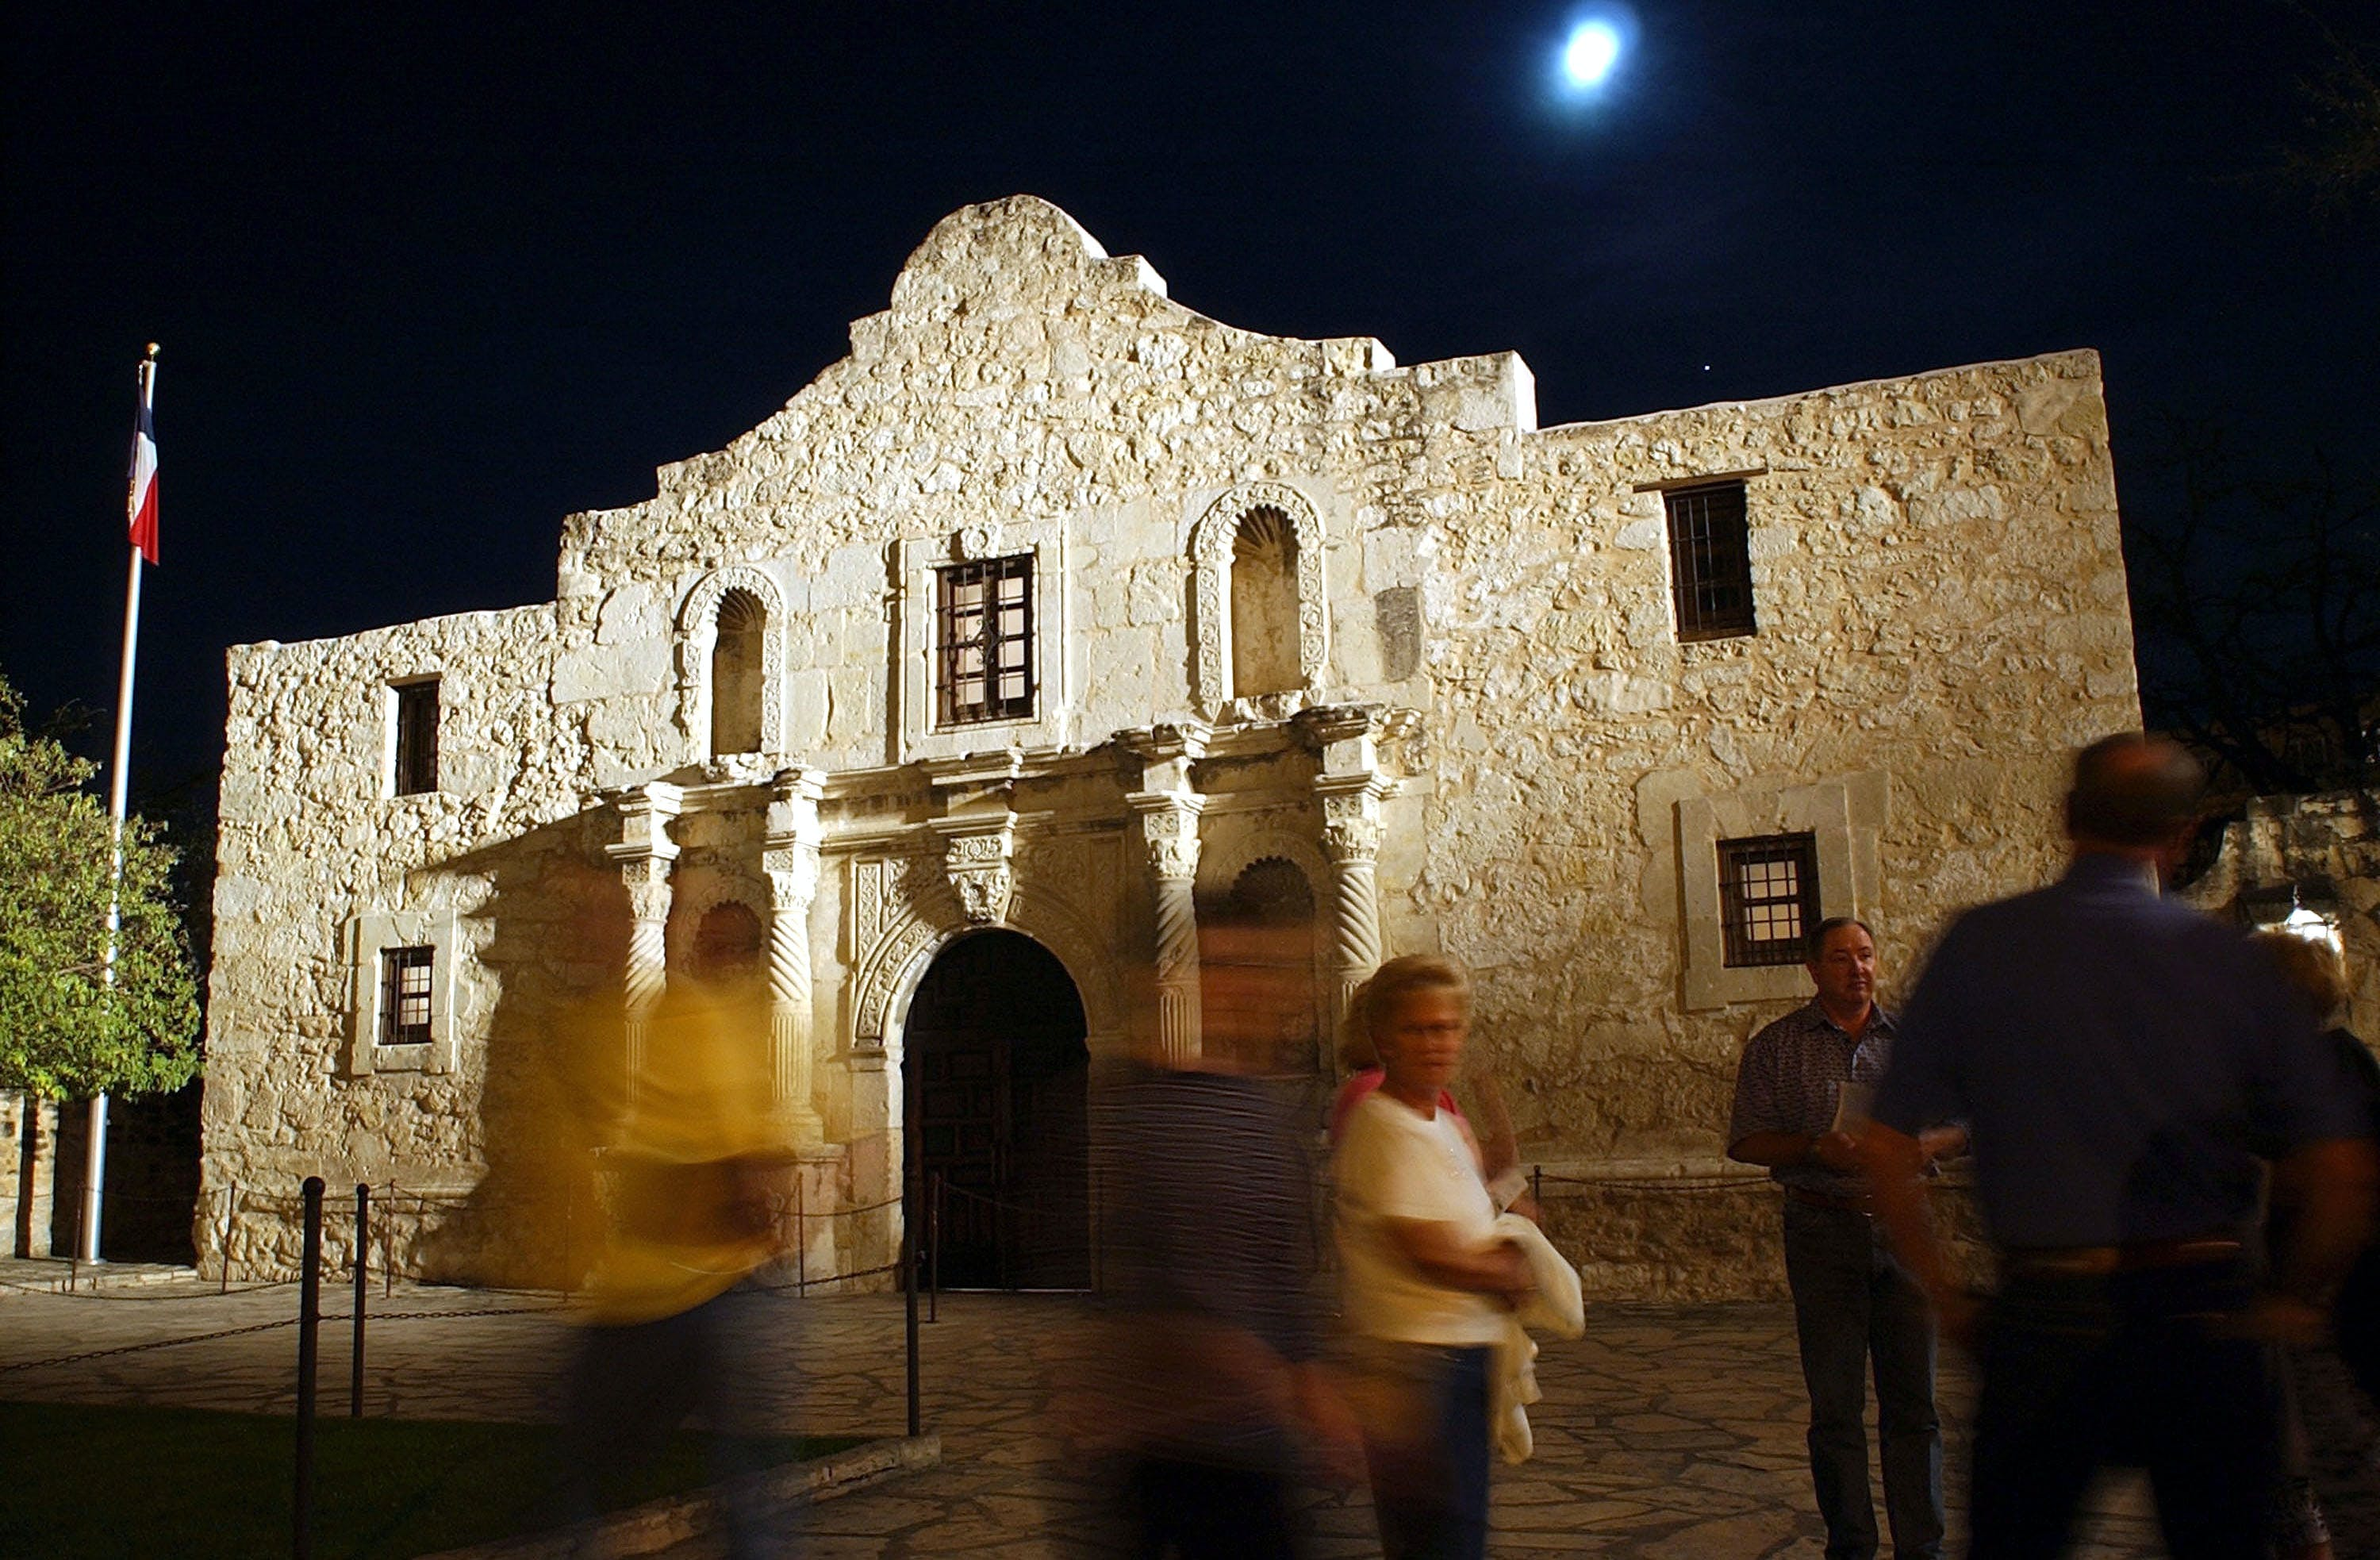 Visitors walk around outside of the Alamo the night before the 168th Anniversary of the 1836 Fall of the Alamo March 5, 2004 in San Antonio, Texas.